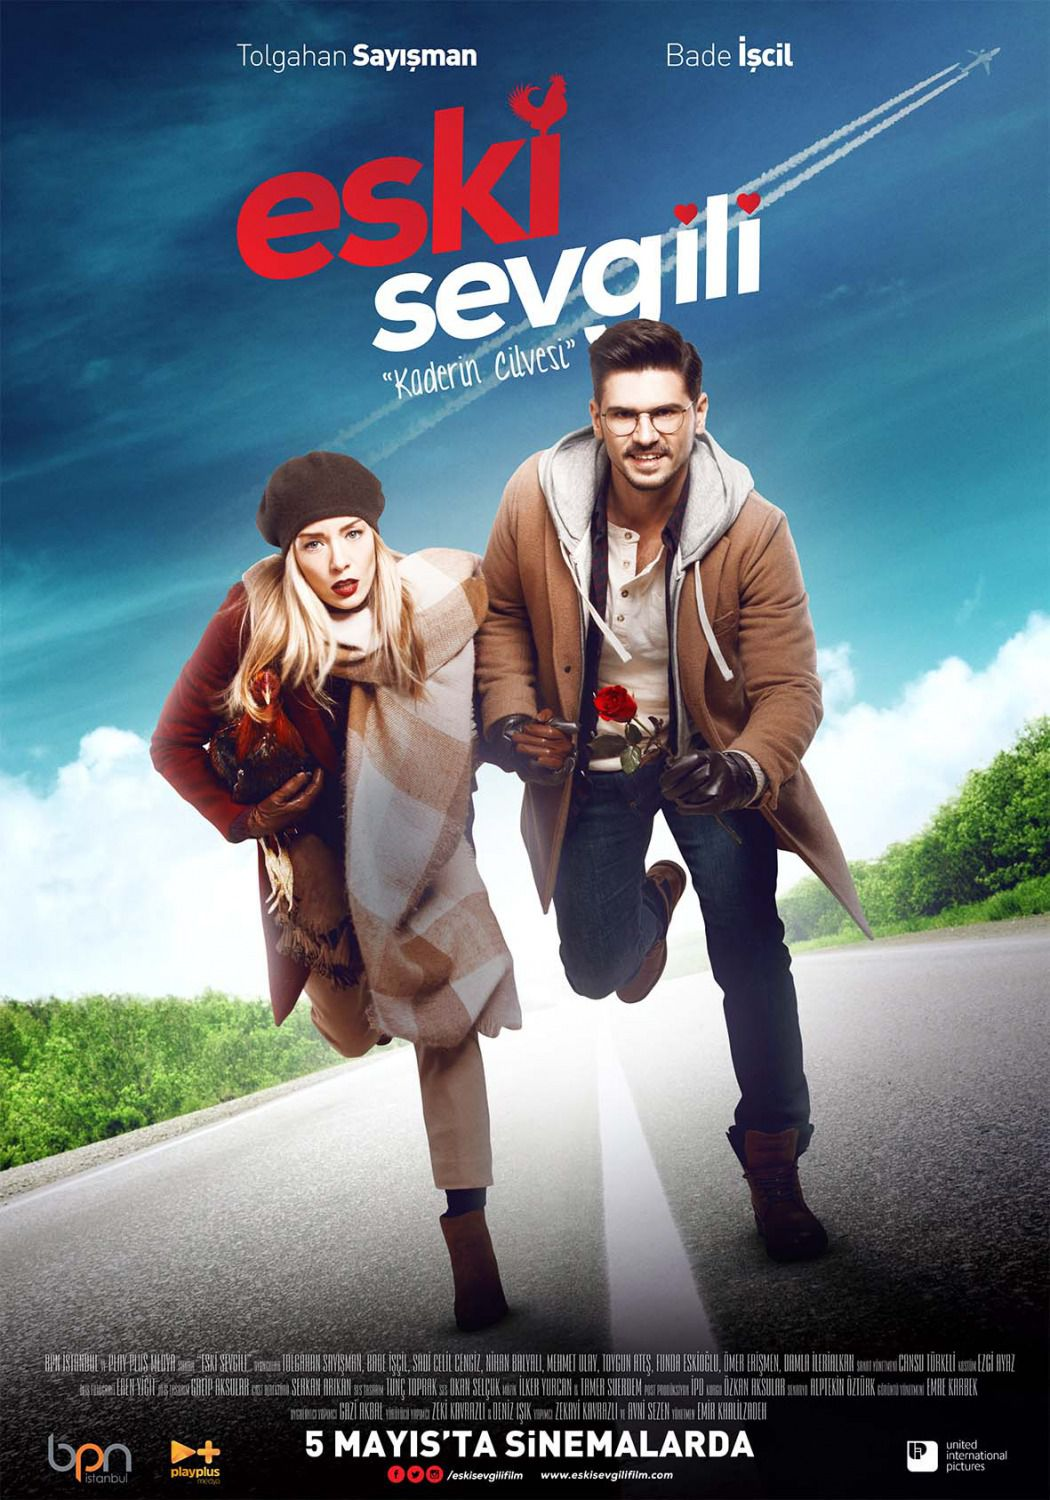 Eski Sevgili - Ex Girlfriend - love film poster